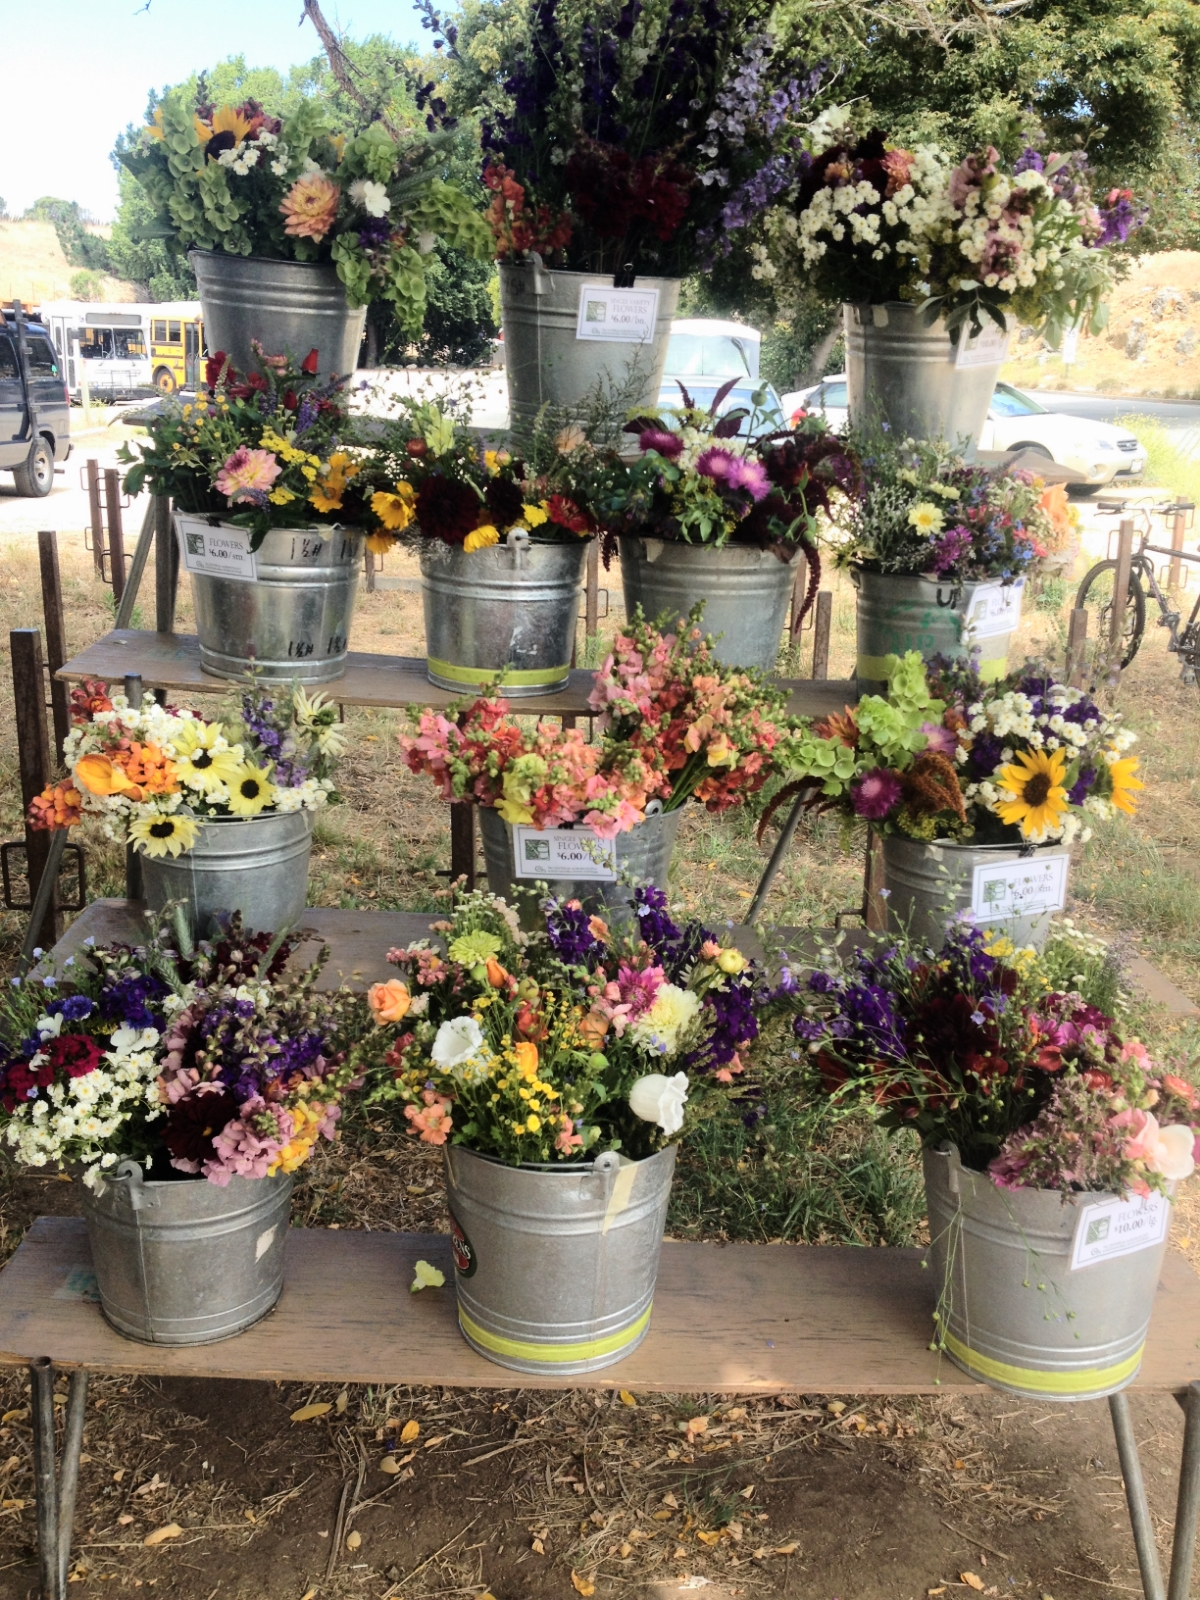 Gorgeous flowers at the UCSC Organic Farm Stand